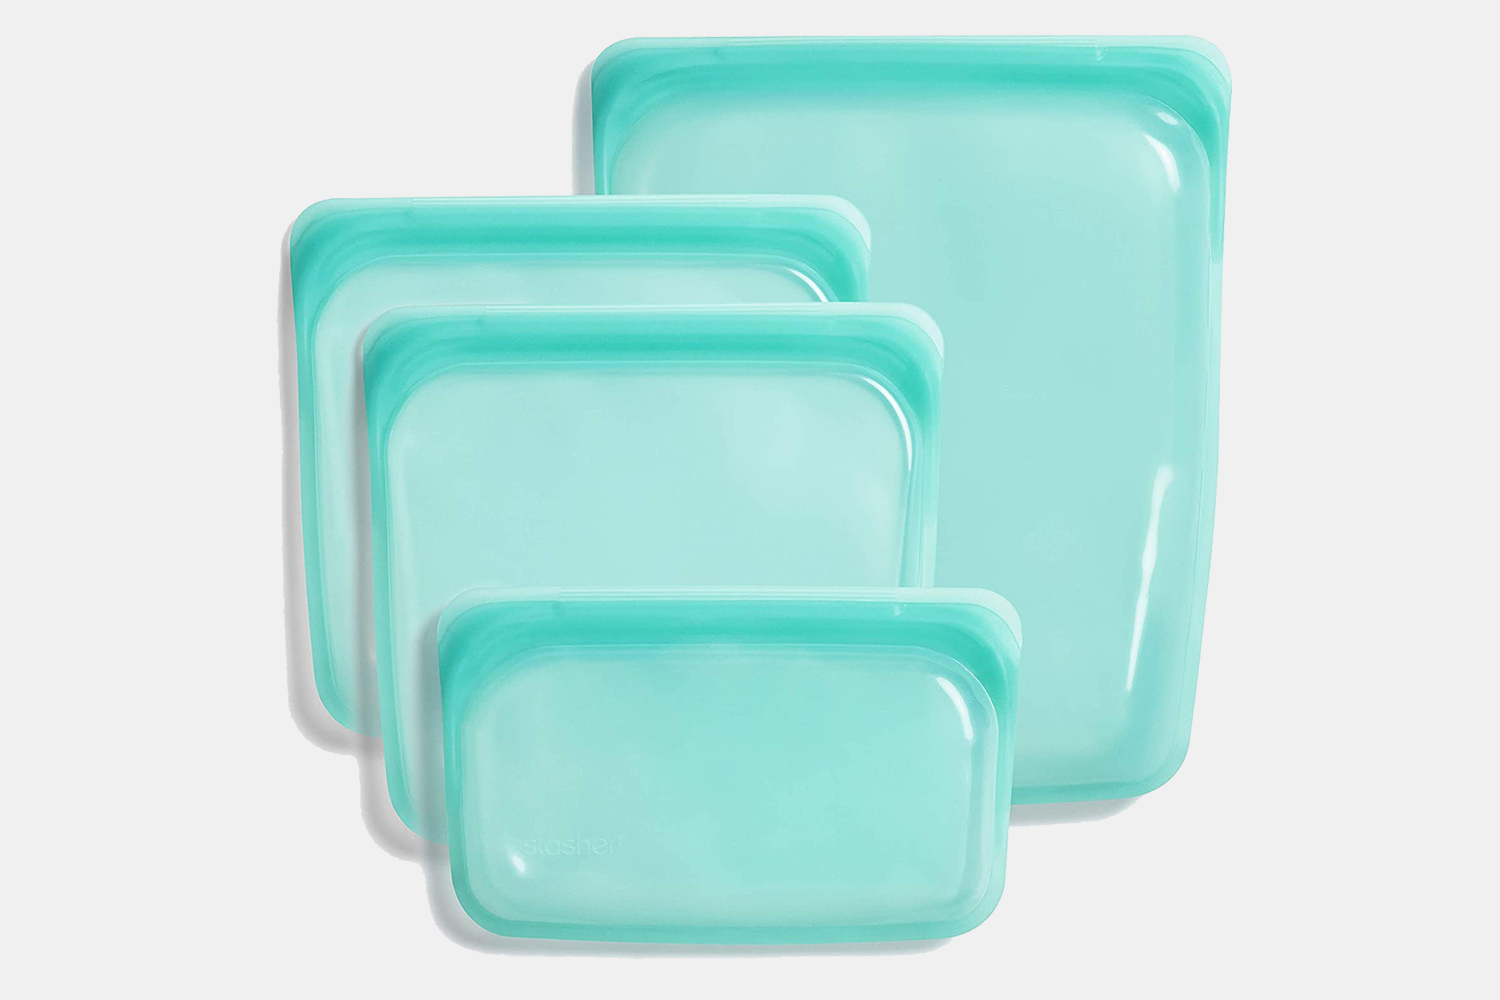 Stasher Reusable Silicone Bags